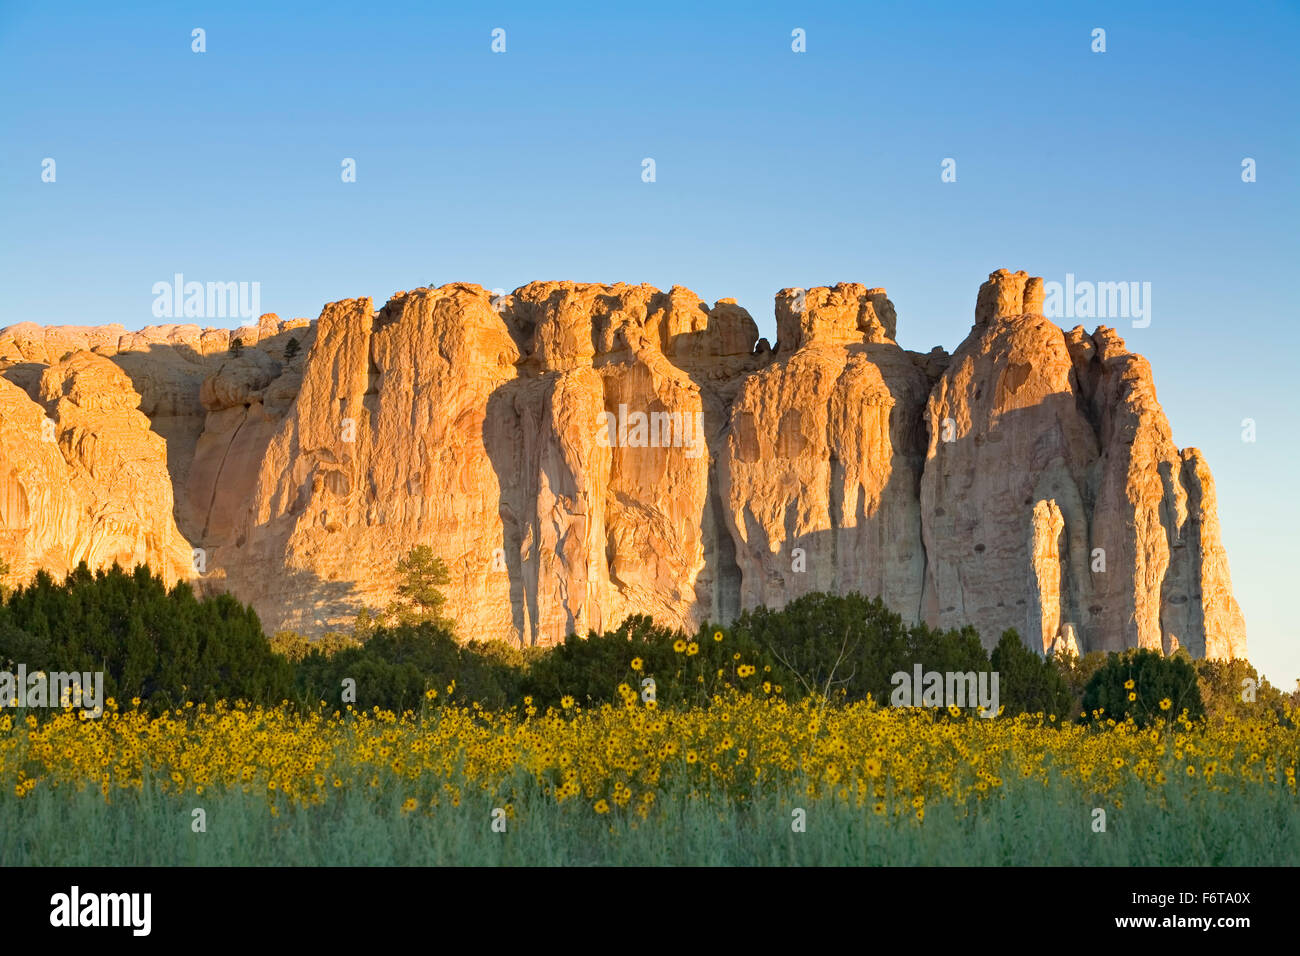 Colorado plateau new mexico stock photos colorado plateau new yellow wildflowers and inscription rock el morro national monument new mexico usa stock publicscrutiny Images